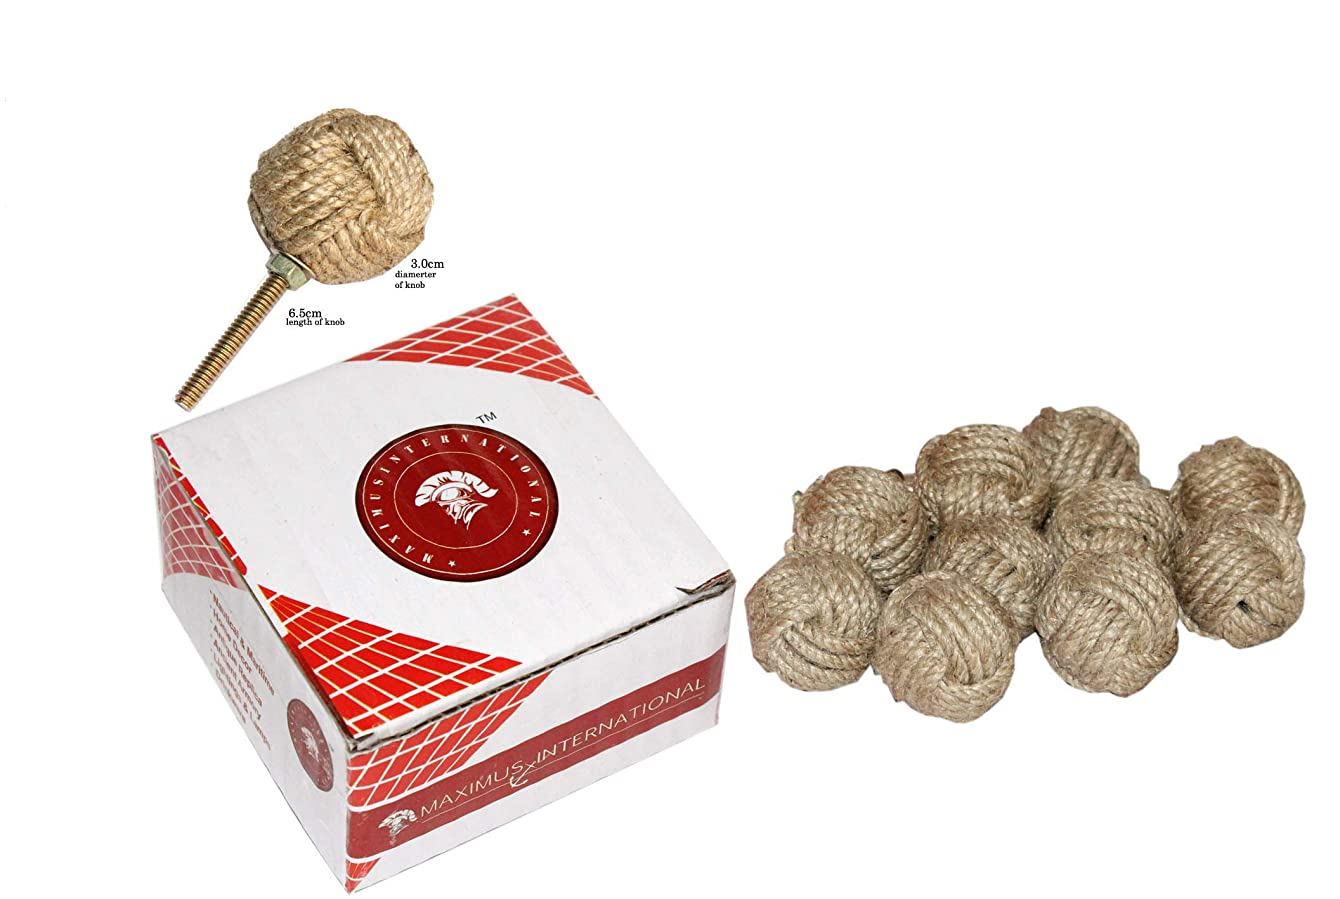 Maximus International's Jute Rope Door Knobs/Rope Knot Drawer Pulls and Knobs/Pull and Push Handle Knobs for Cabinets, Wardrobes & Cupboards/Nautical Hardware Decor, 35 mm